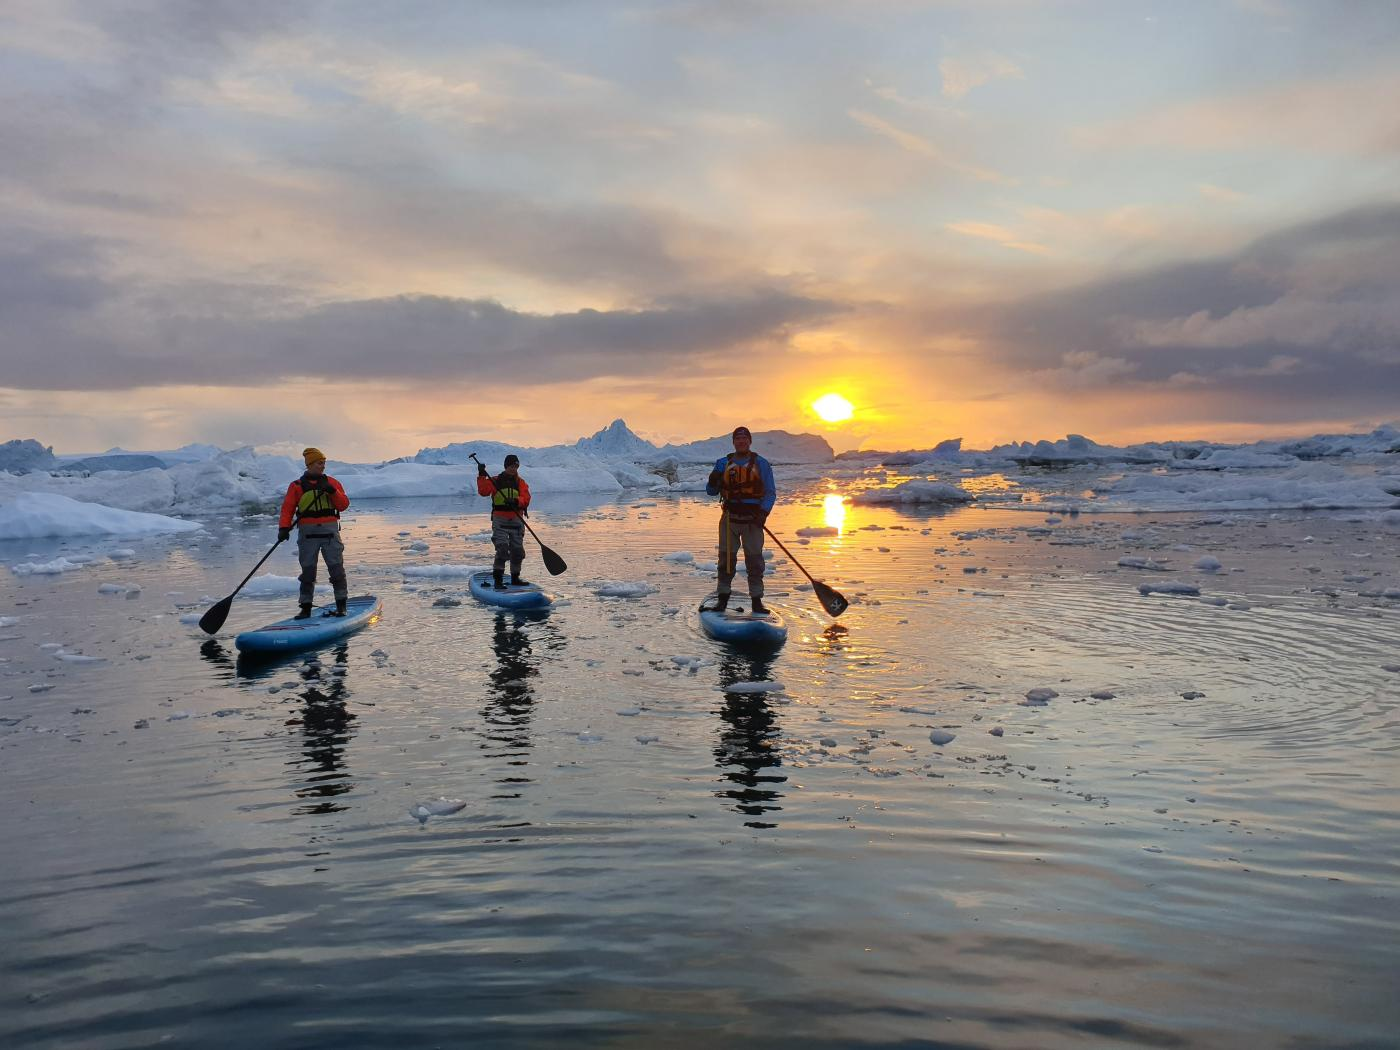 SUP. Photo by Ilulissat Adventure